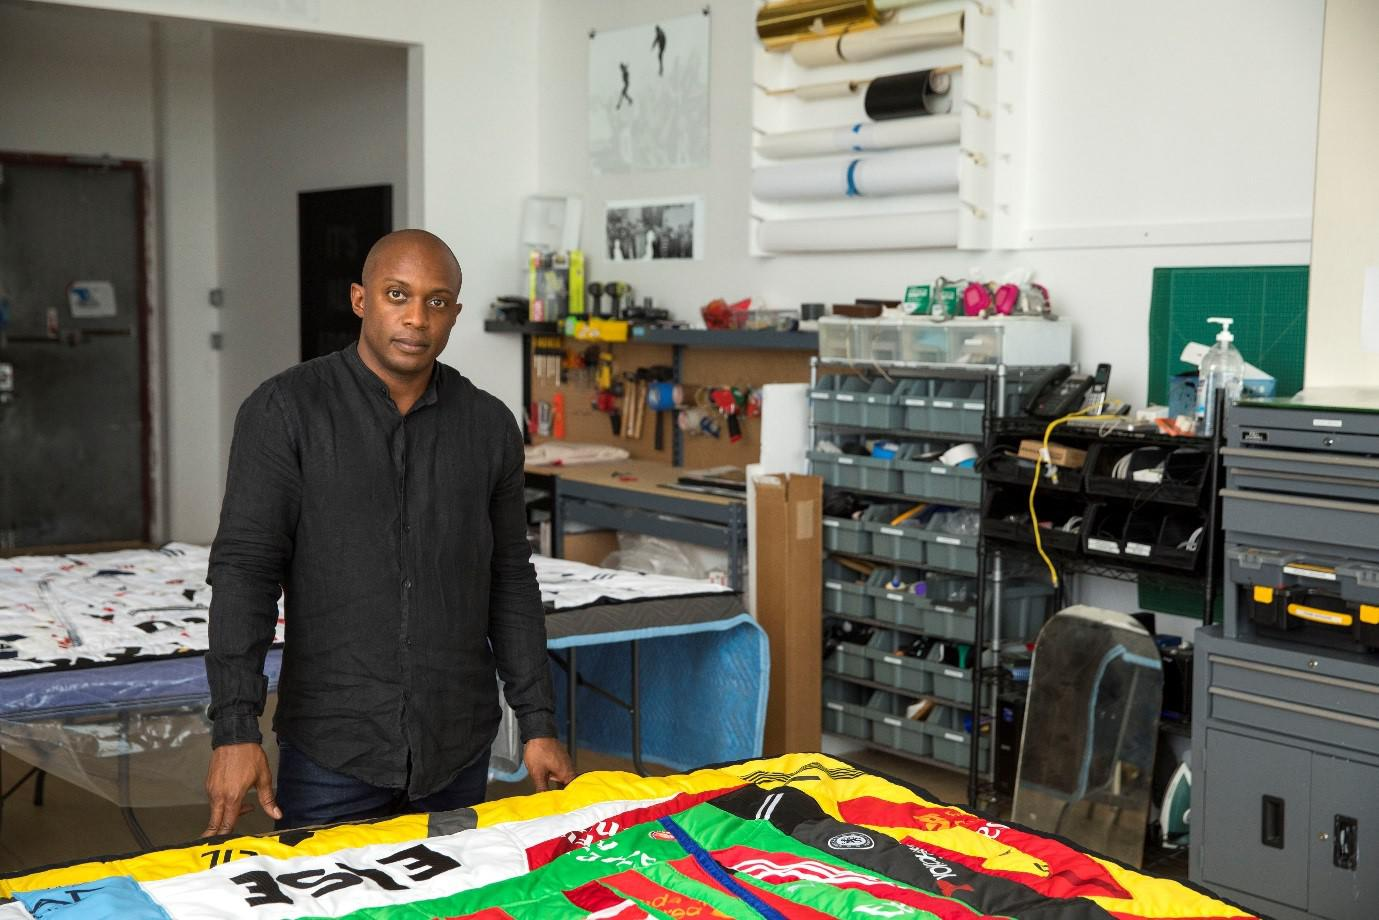 Artist Hank Willis Thomas. His show is up at Jack Shainman's two Chelsea galleries in New York and runs through May 12. It features 15 works based on photographs of 20th century protest movements around the world.